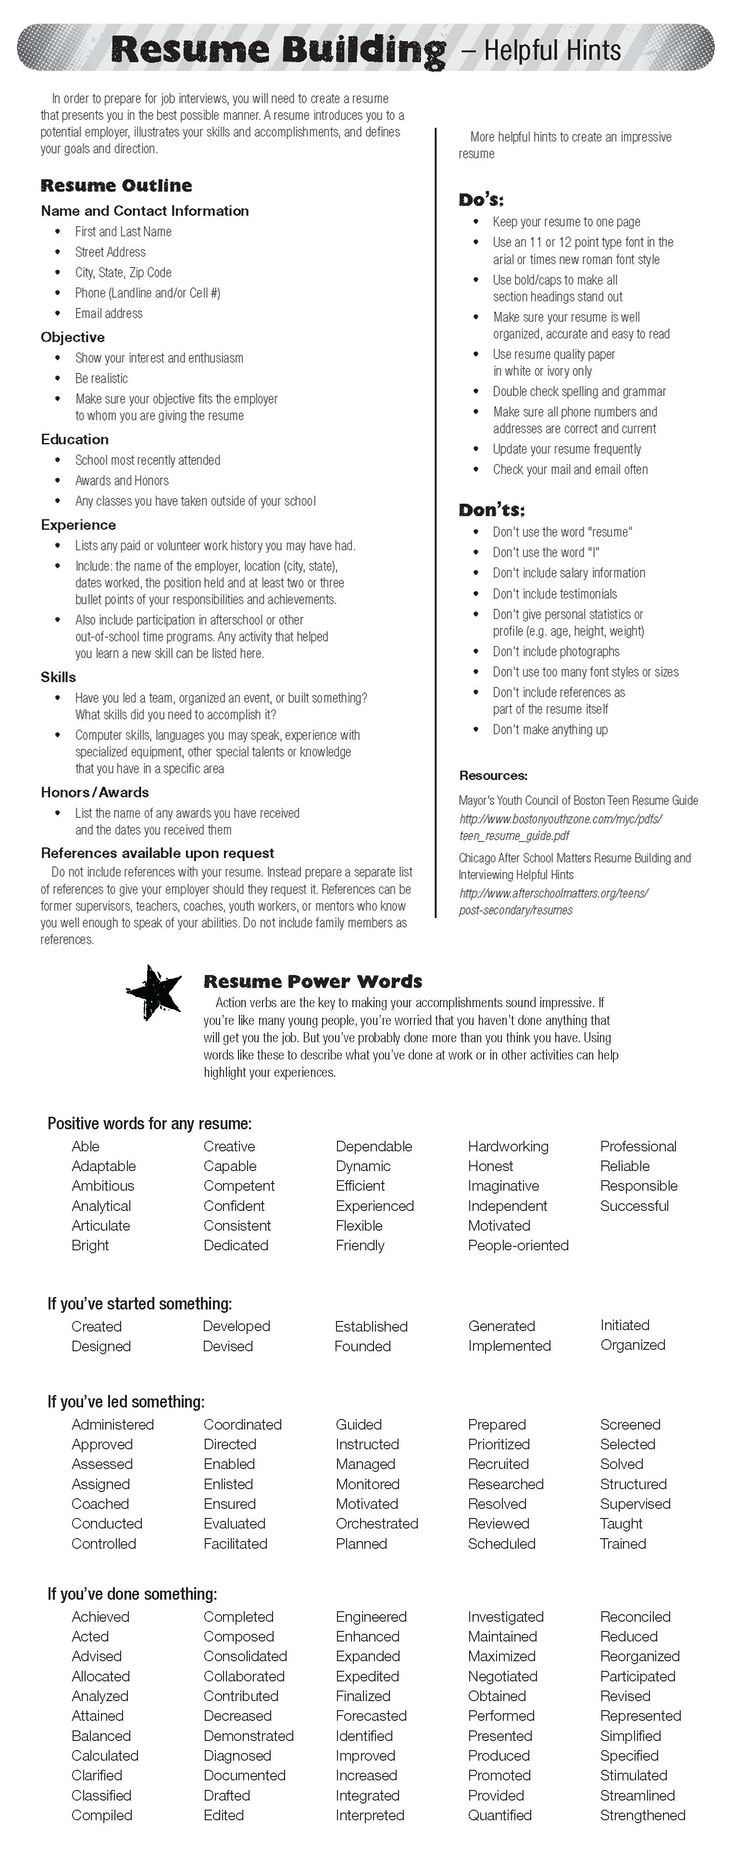 Professional resume writing services melbourne   South university     Gumtree